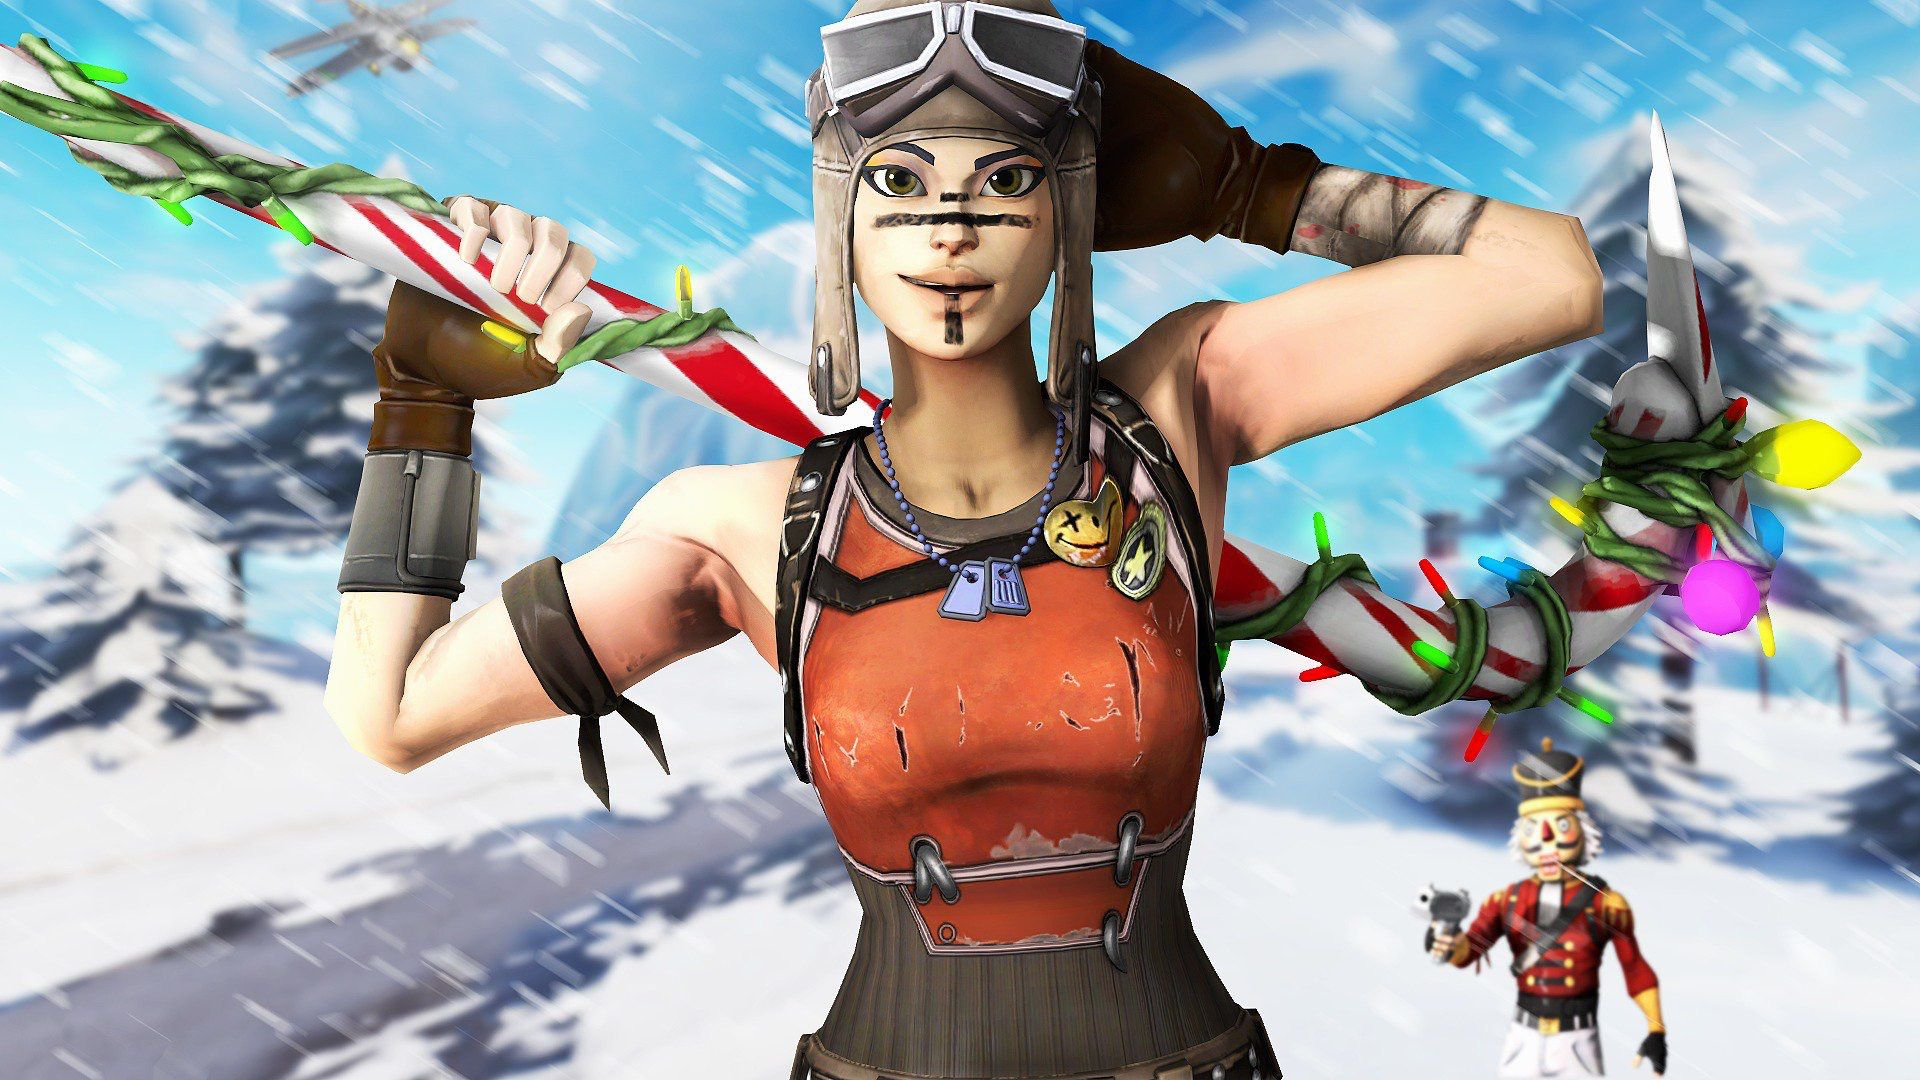 Pin by Robyn Sullivan on Fortnite Gaming wallpapers